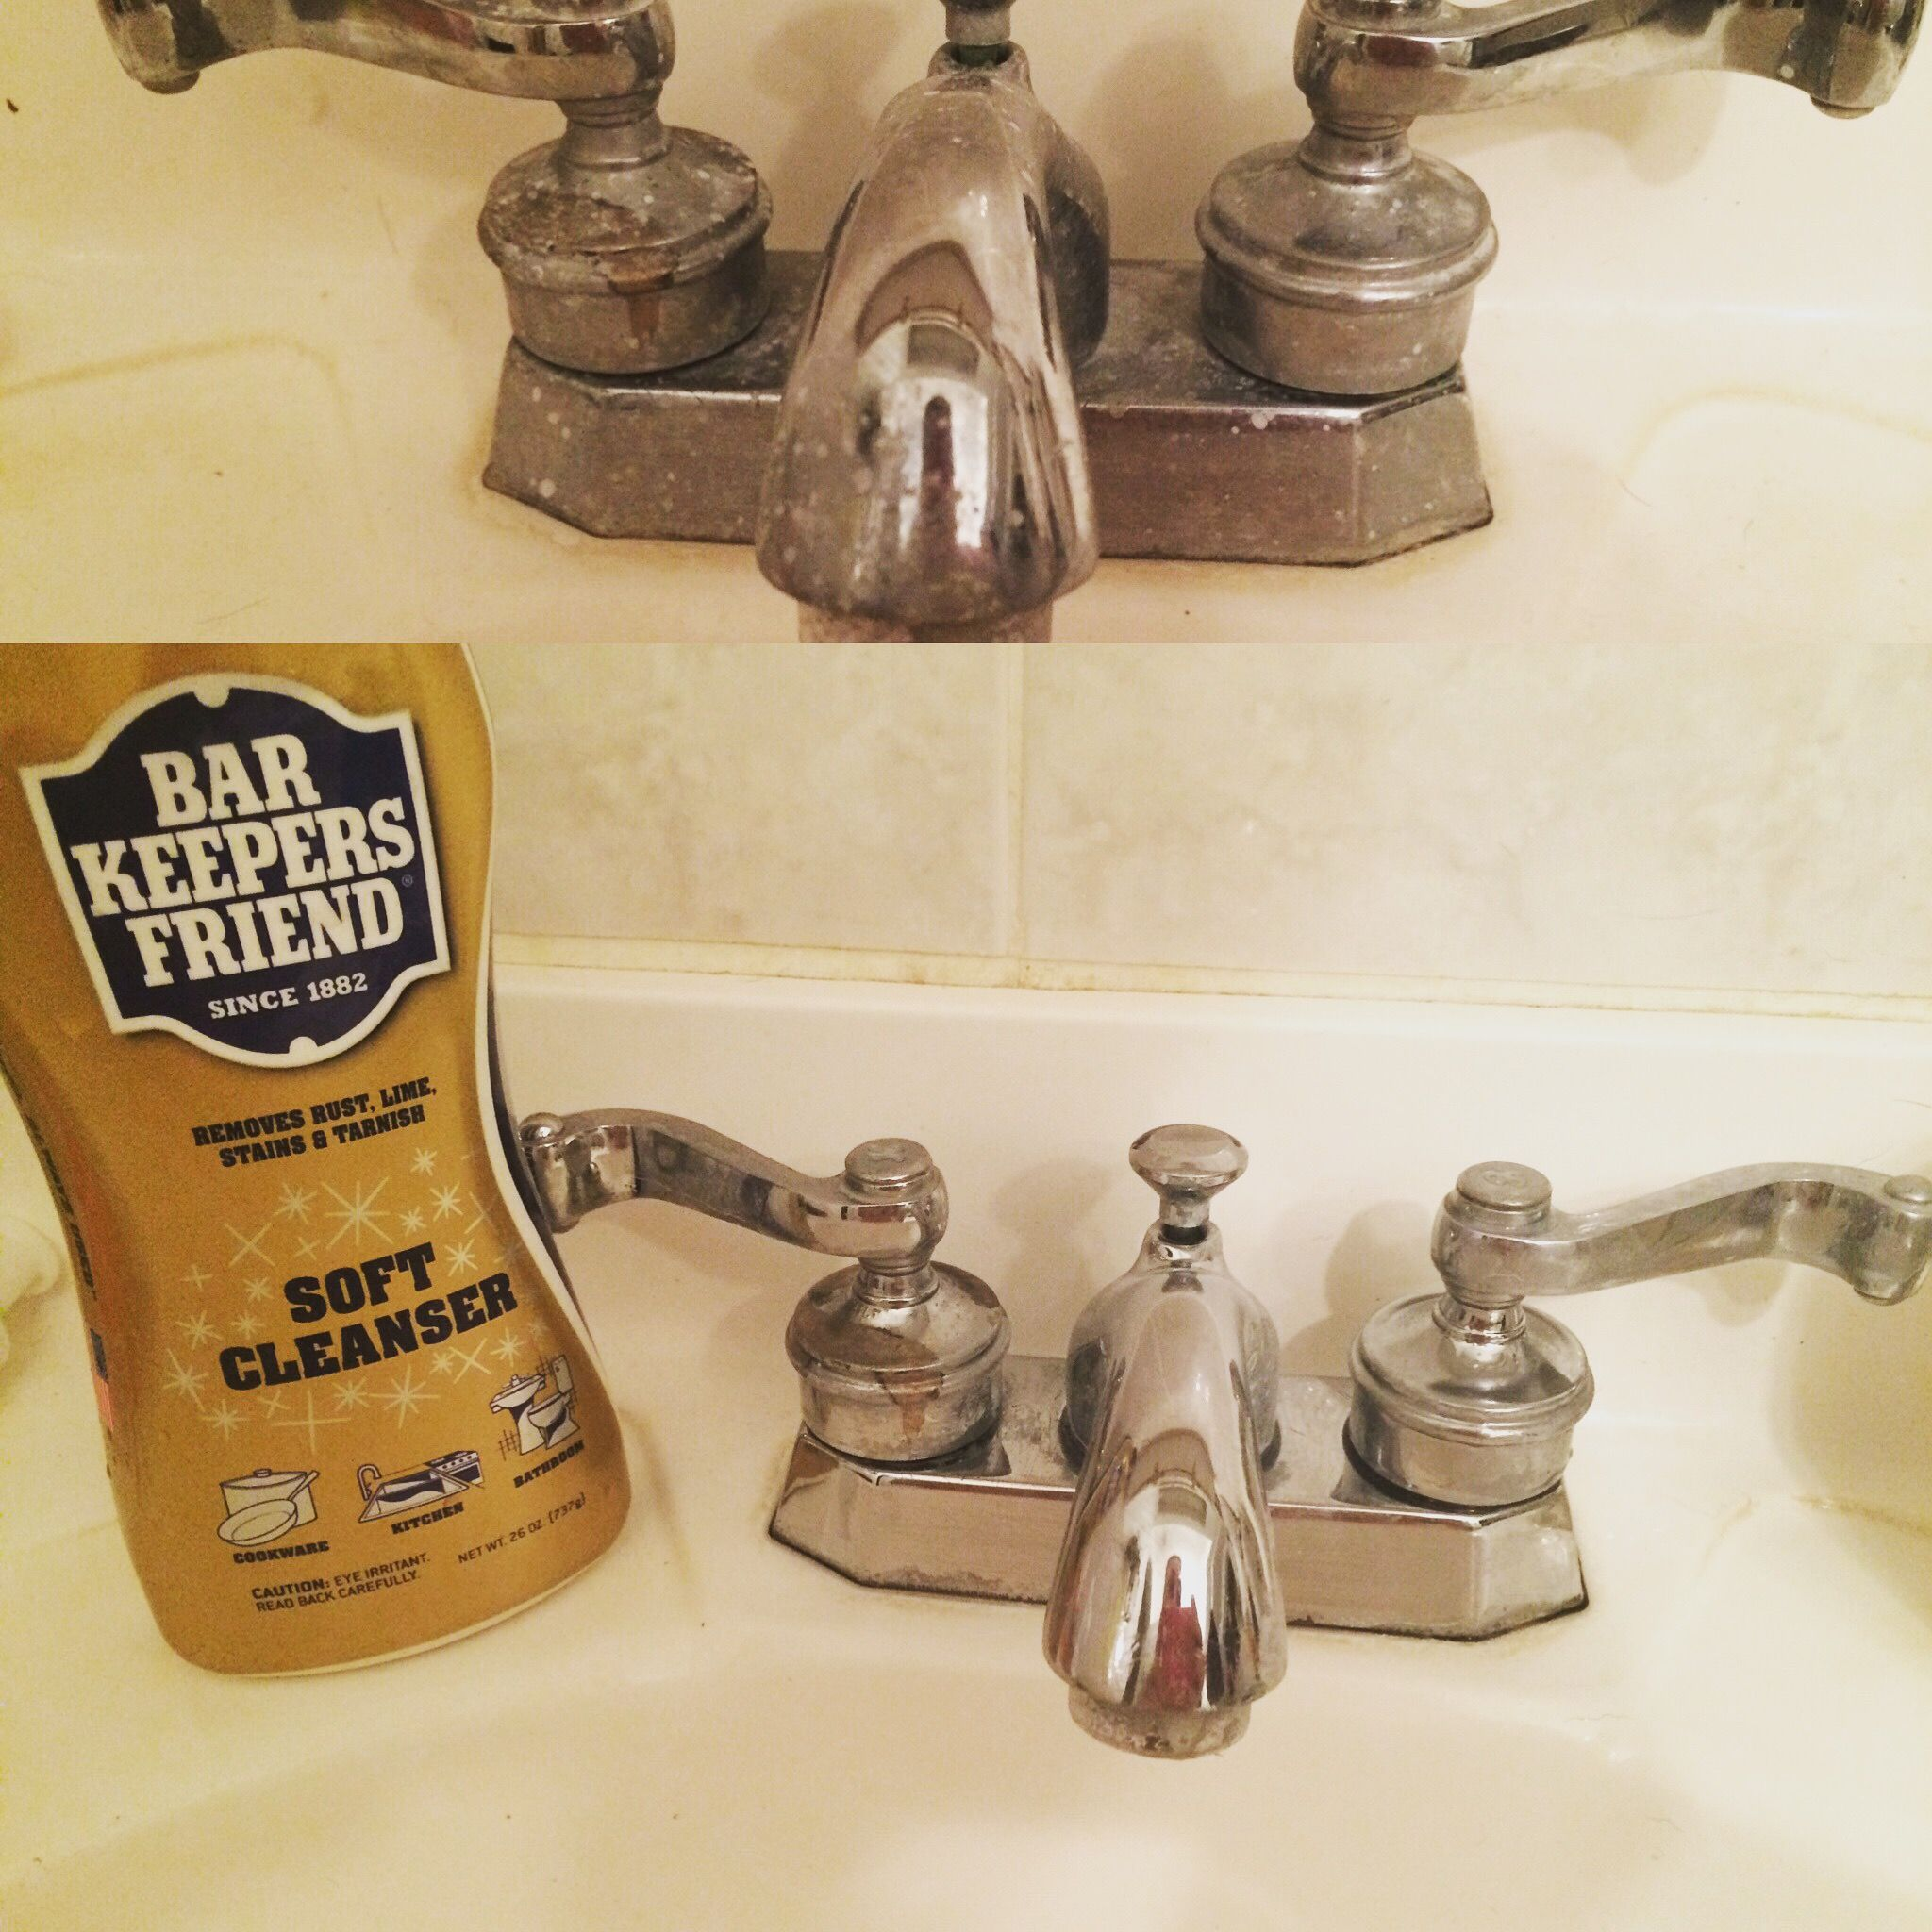 Bar Keepers Friend Will Remove Hard Water From Chrome Fixtures